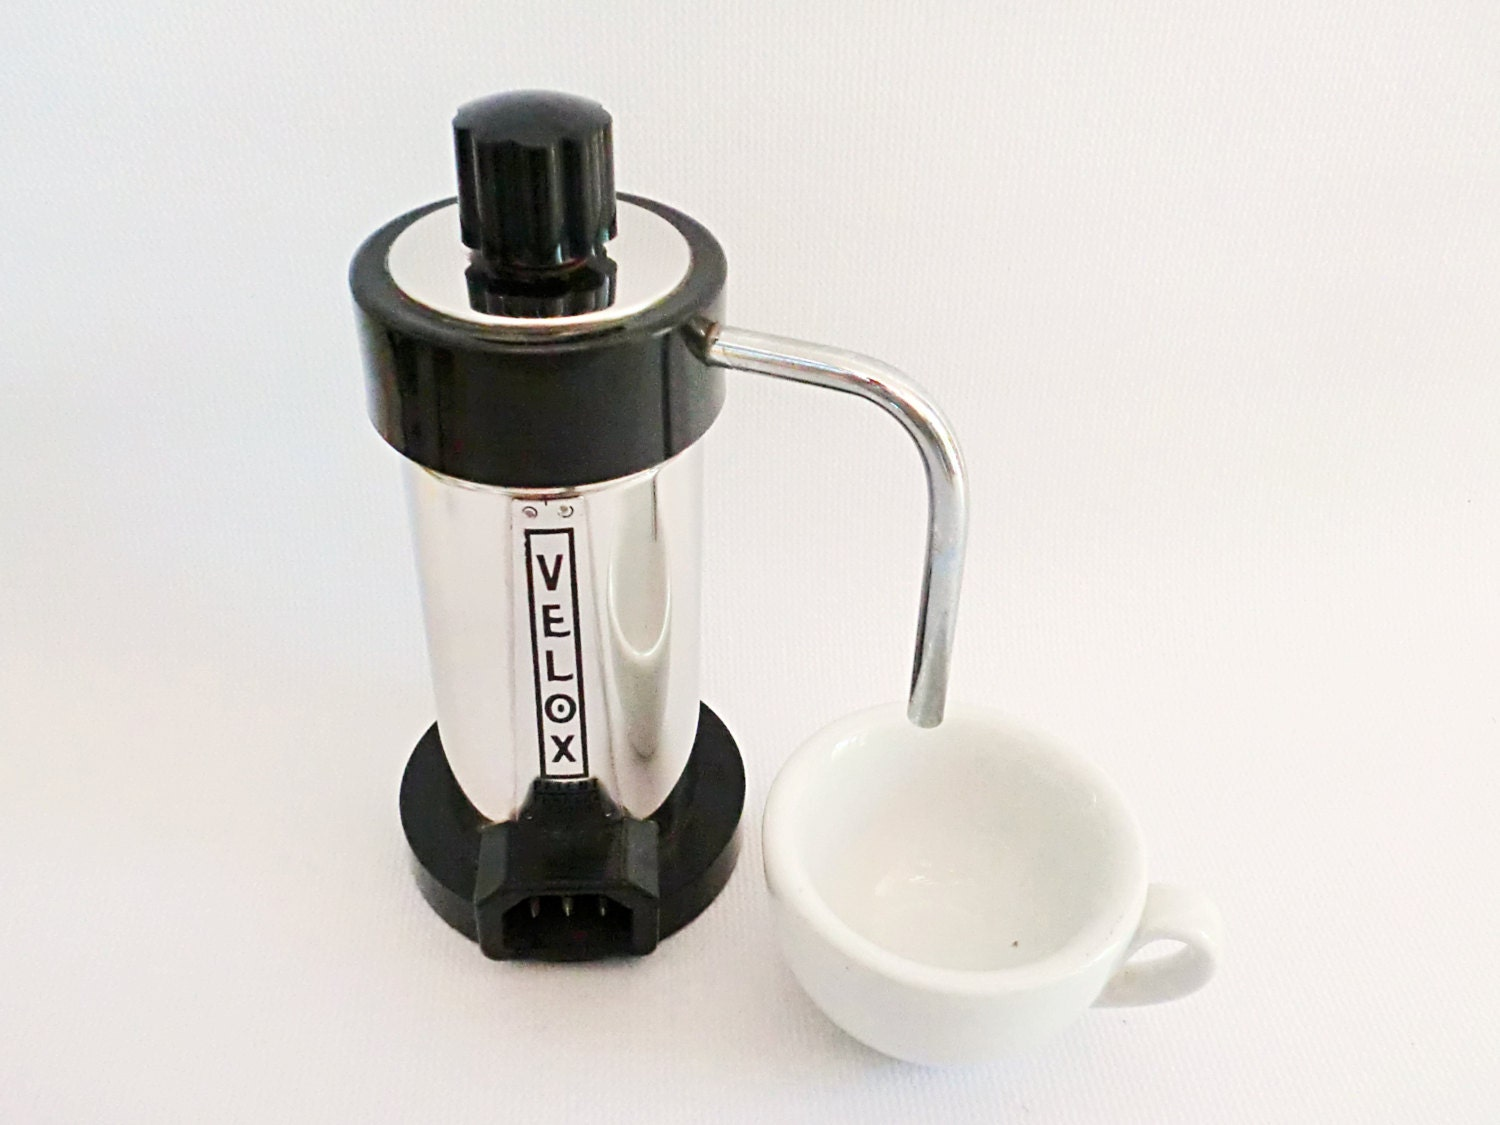 Electric Coffee Maker Invented : Vintage Electric coffee maker Velox made in